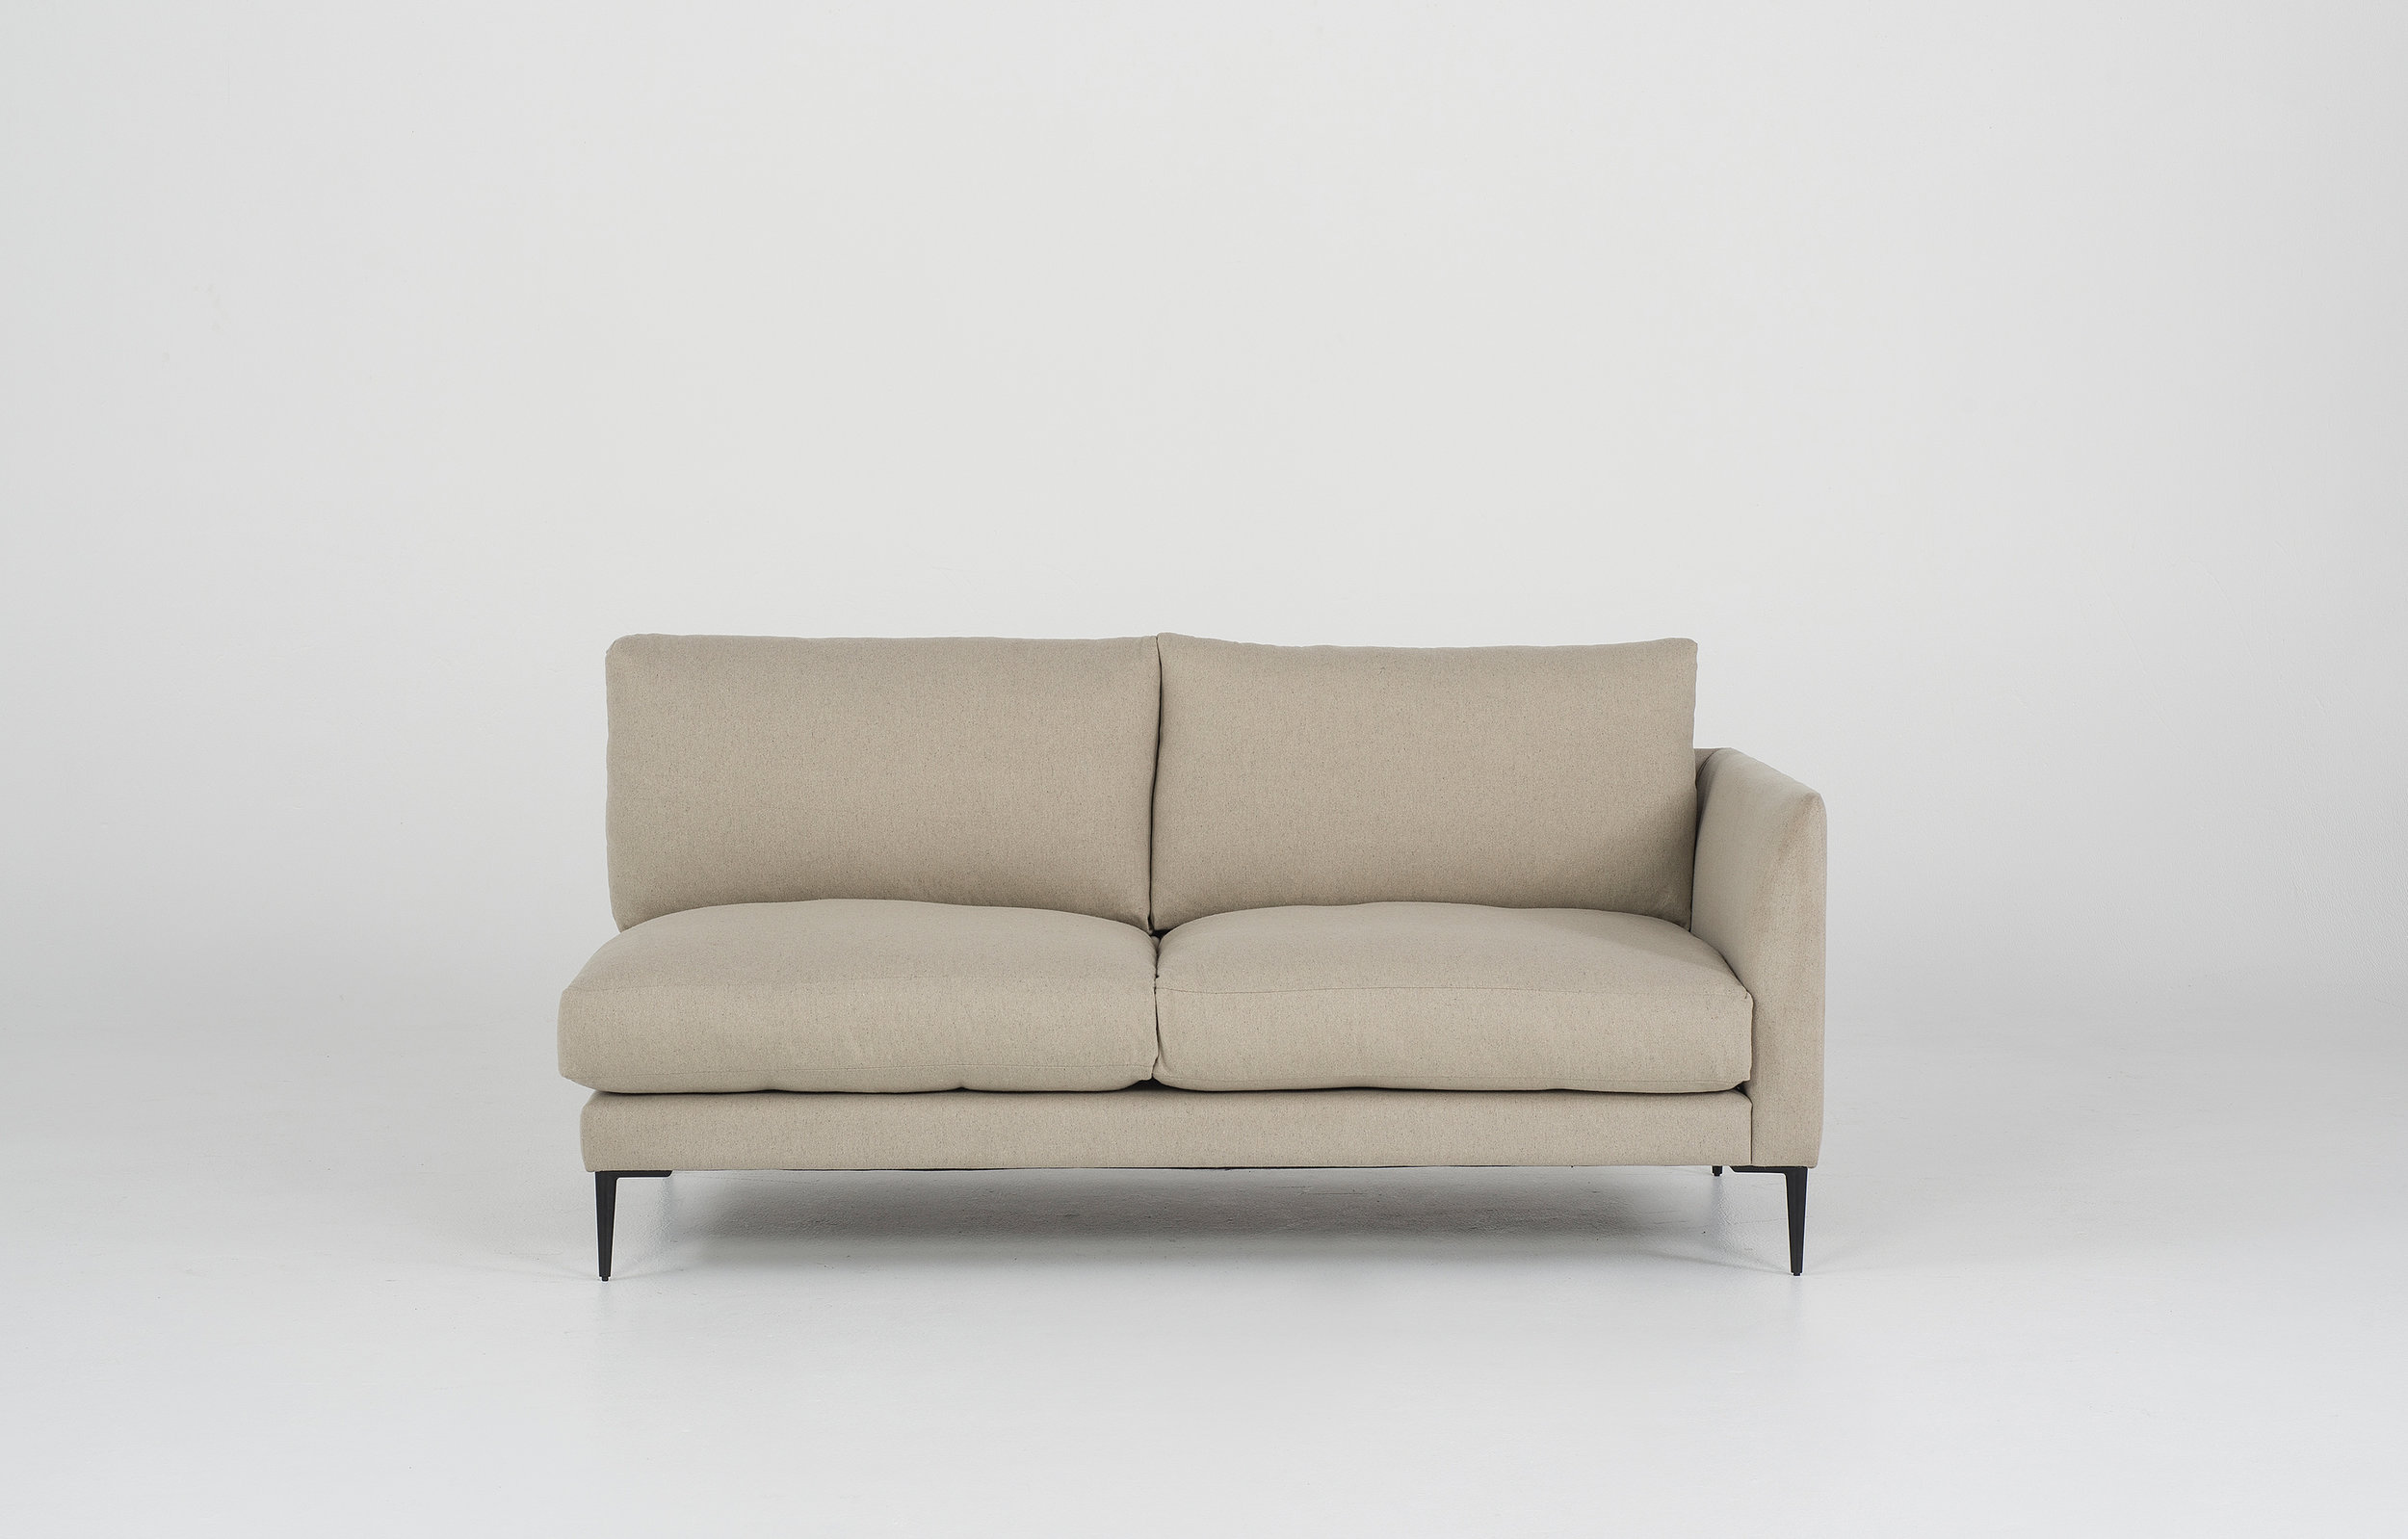 Eve Sofa 2 Seater w/Right Arm   from $3,590.00